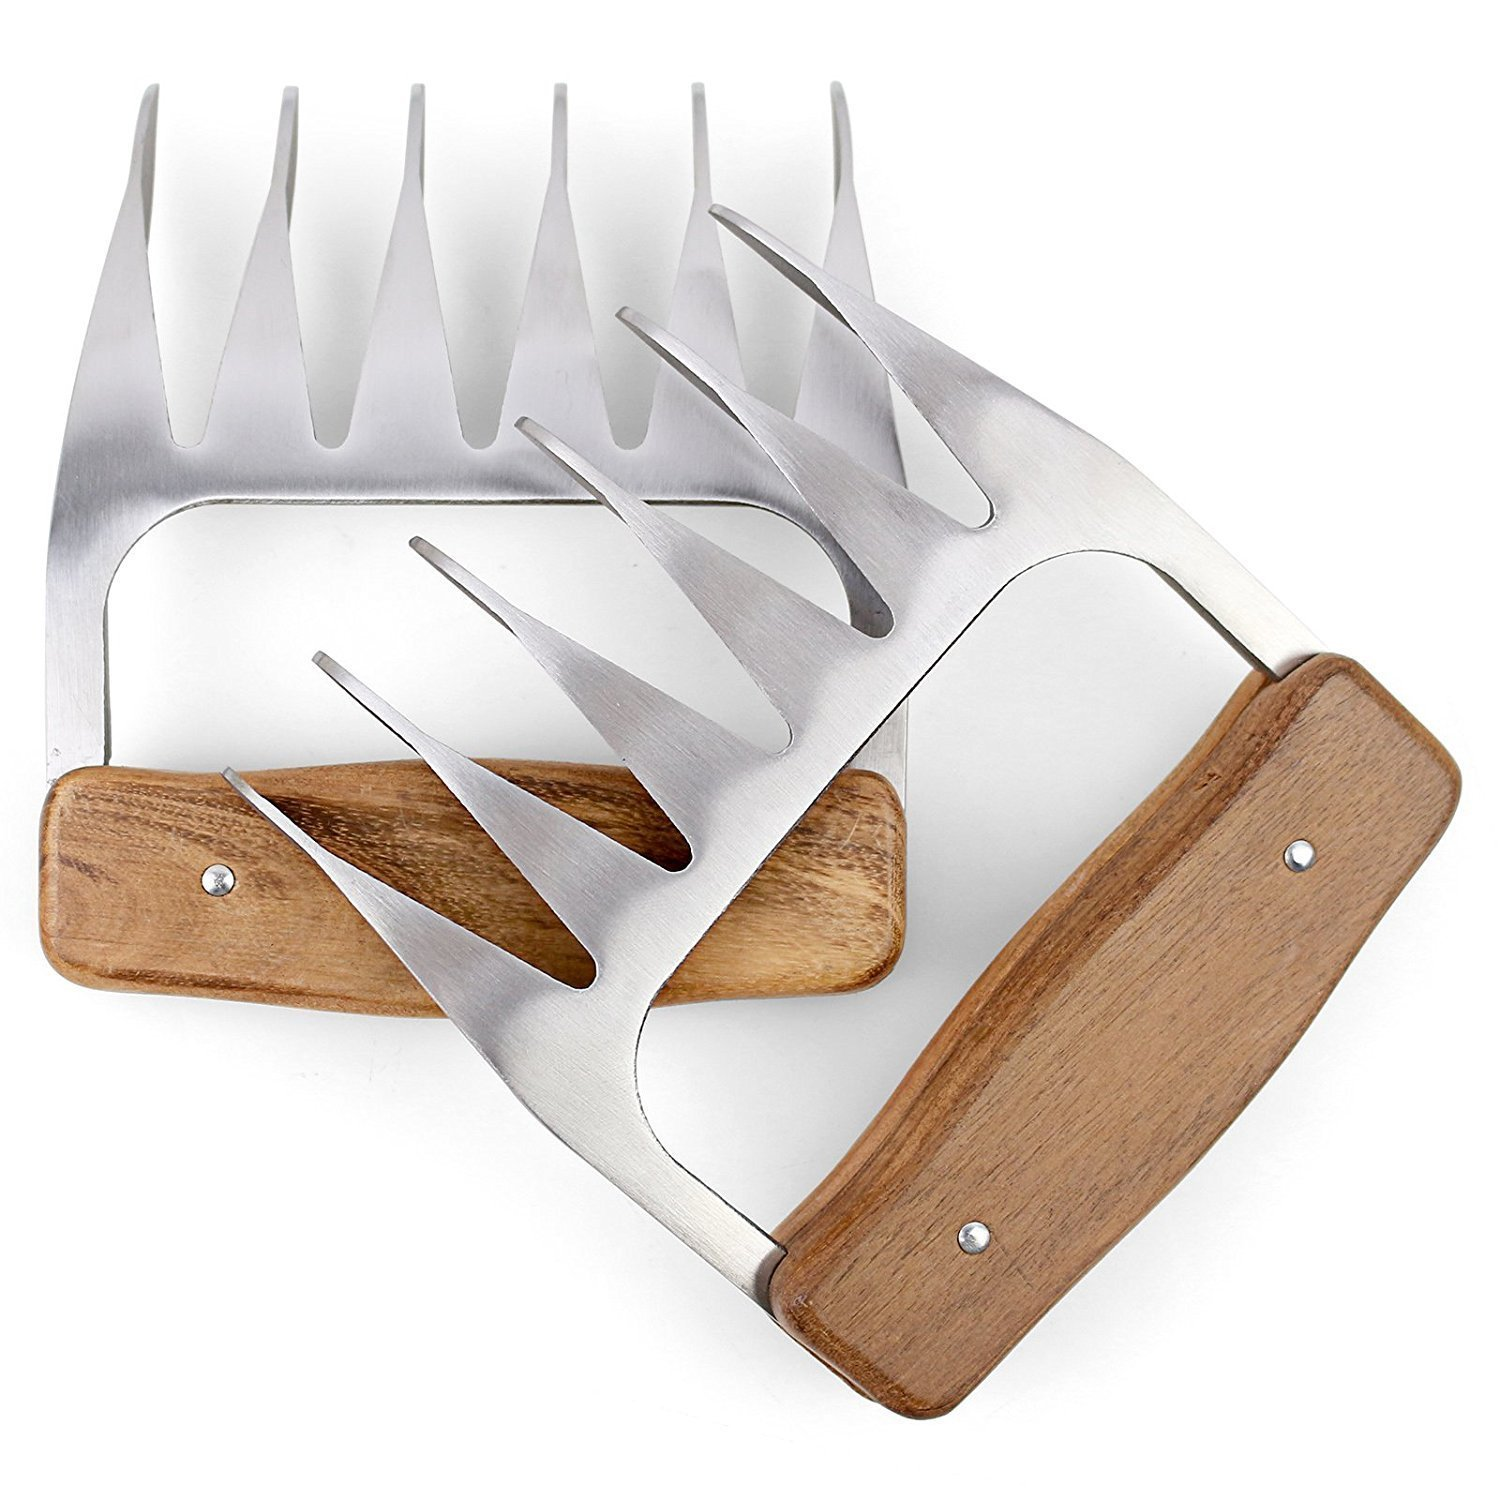 Metal Meat Claws, 1Easylife 18/8 Stainless Steel Meat Forks with Wooden Handle, Best Meat Claws for Shredding, Pulling, Handing, Lifting & Serving Pork, Turkey, Chicken, Brisket (2 Pcs,BPA Free) by 1Easylife (Image #8)